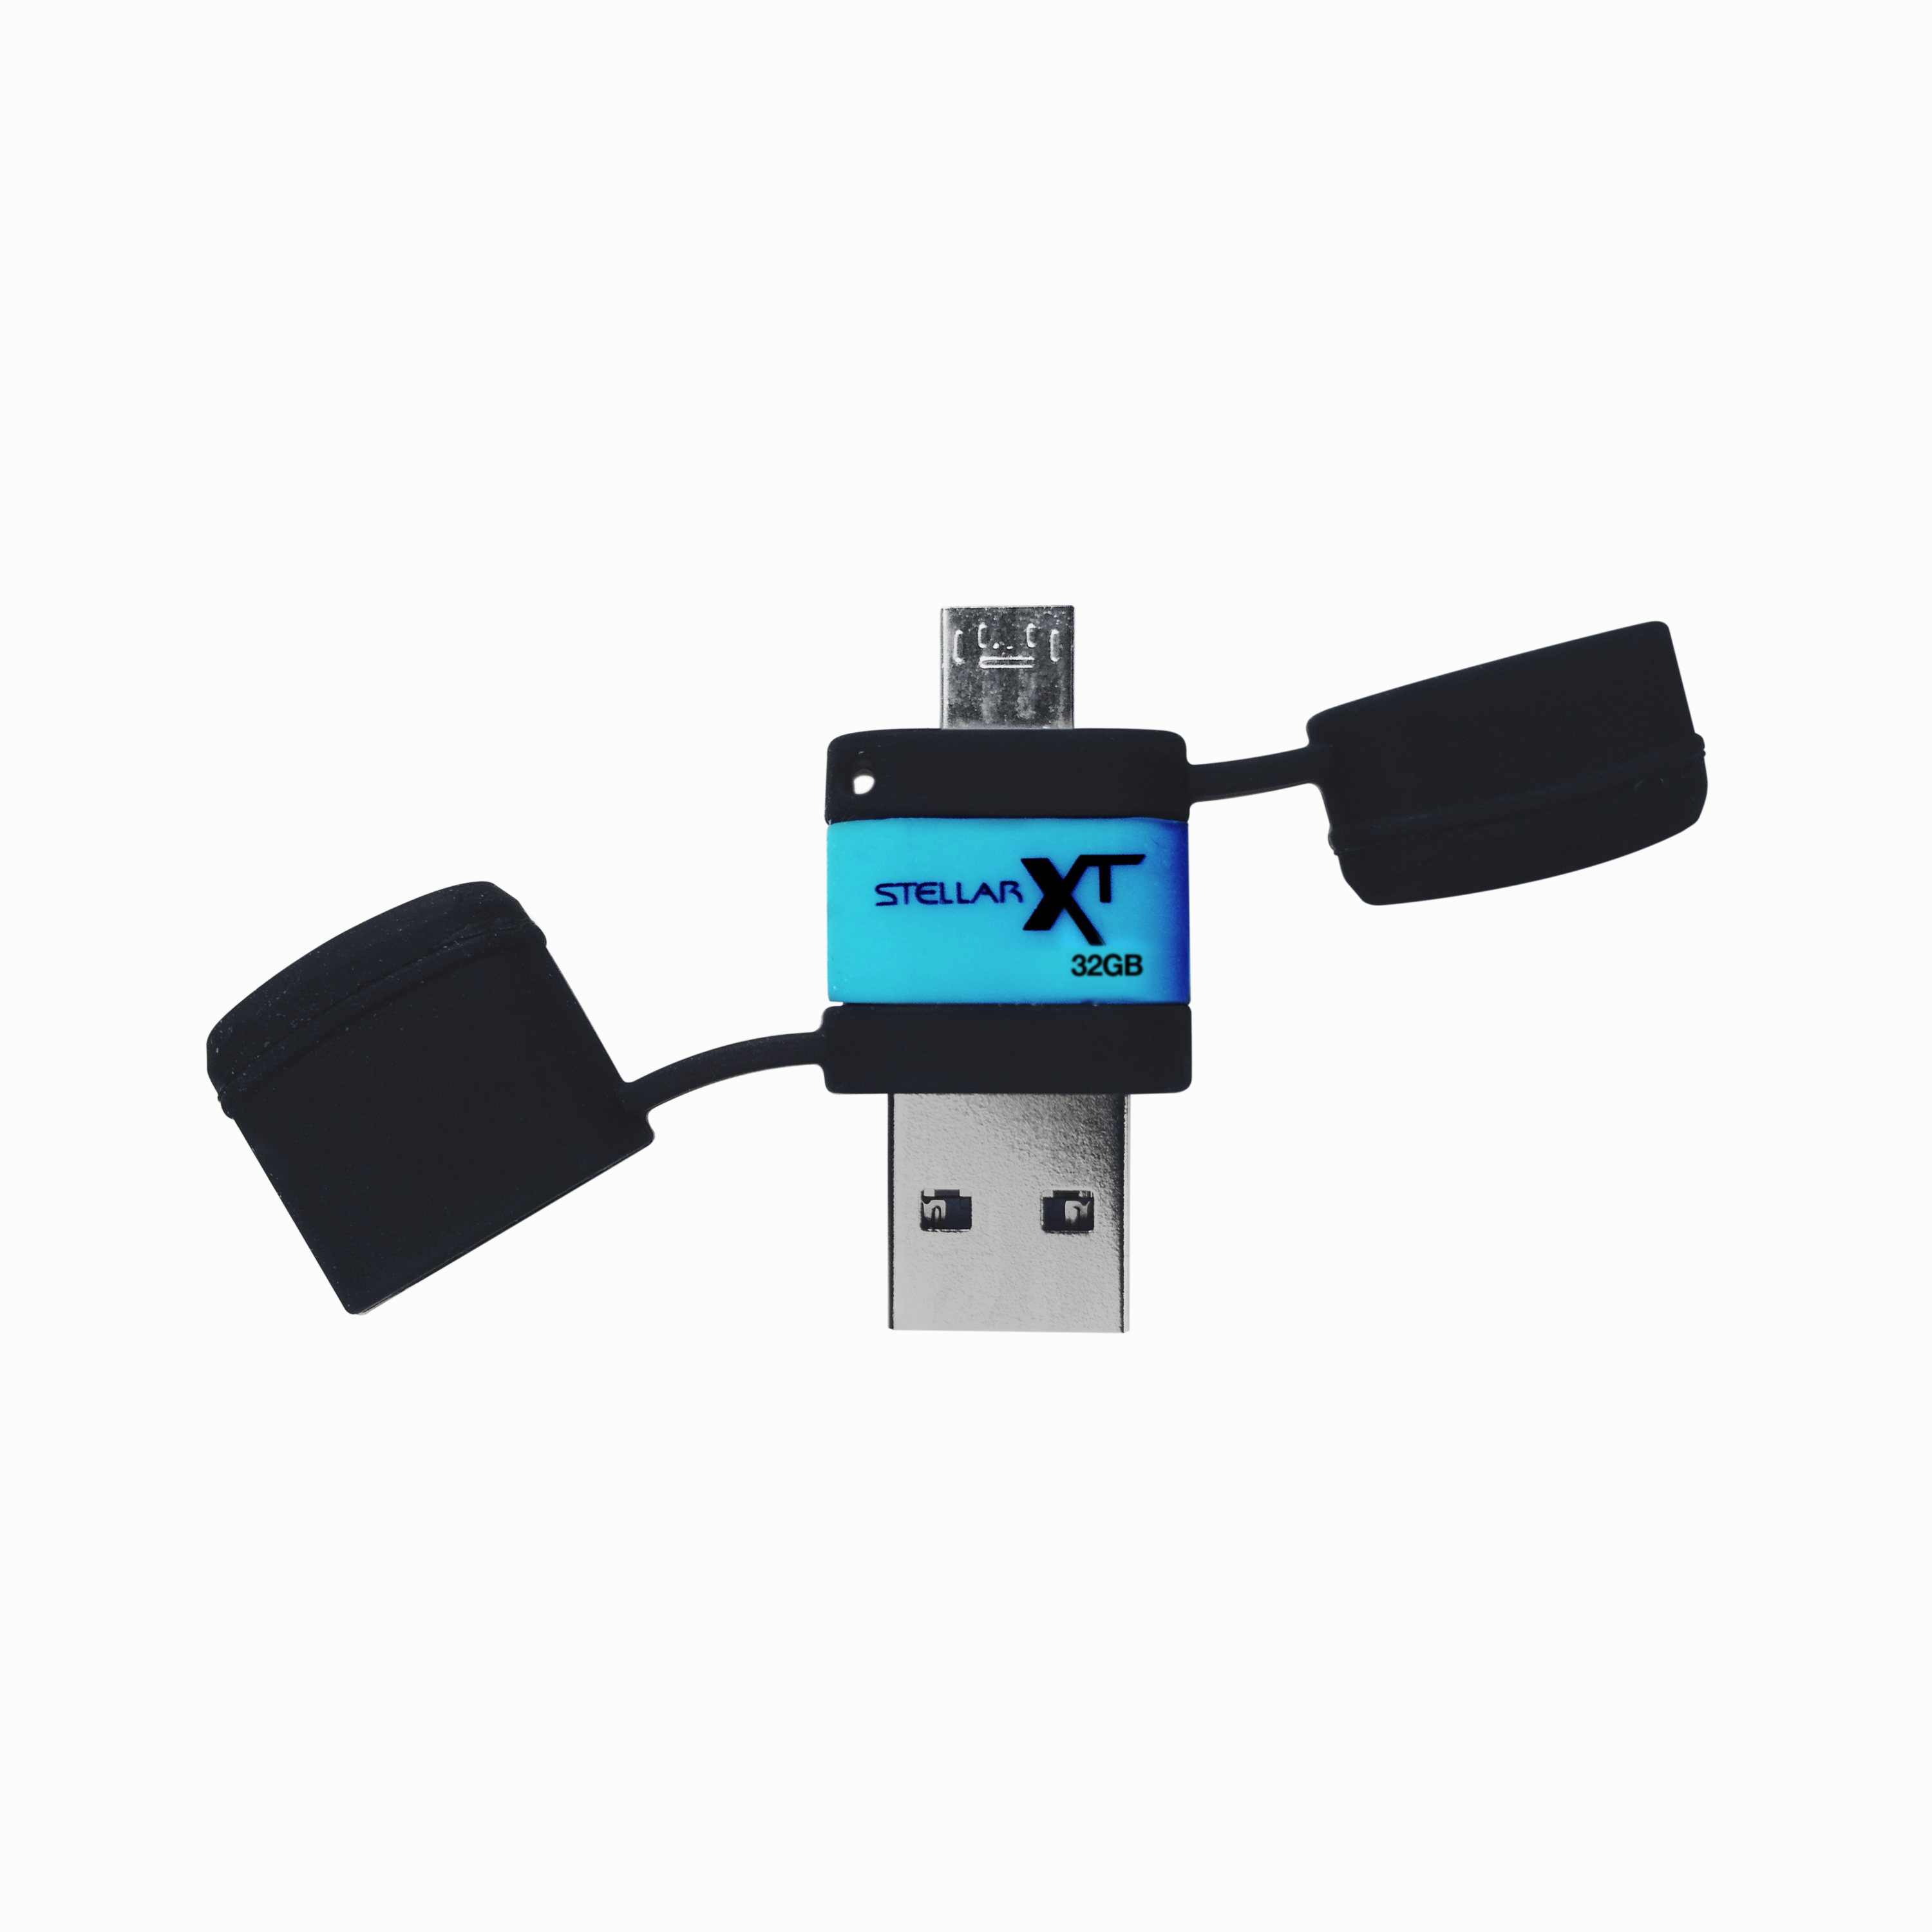 32GB Patriot Stellar XT OTG USB 3.0  110/20MBs